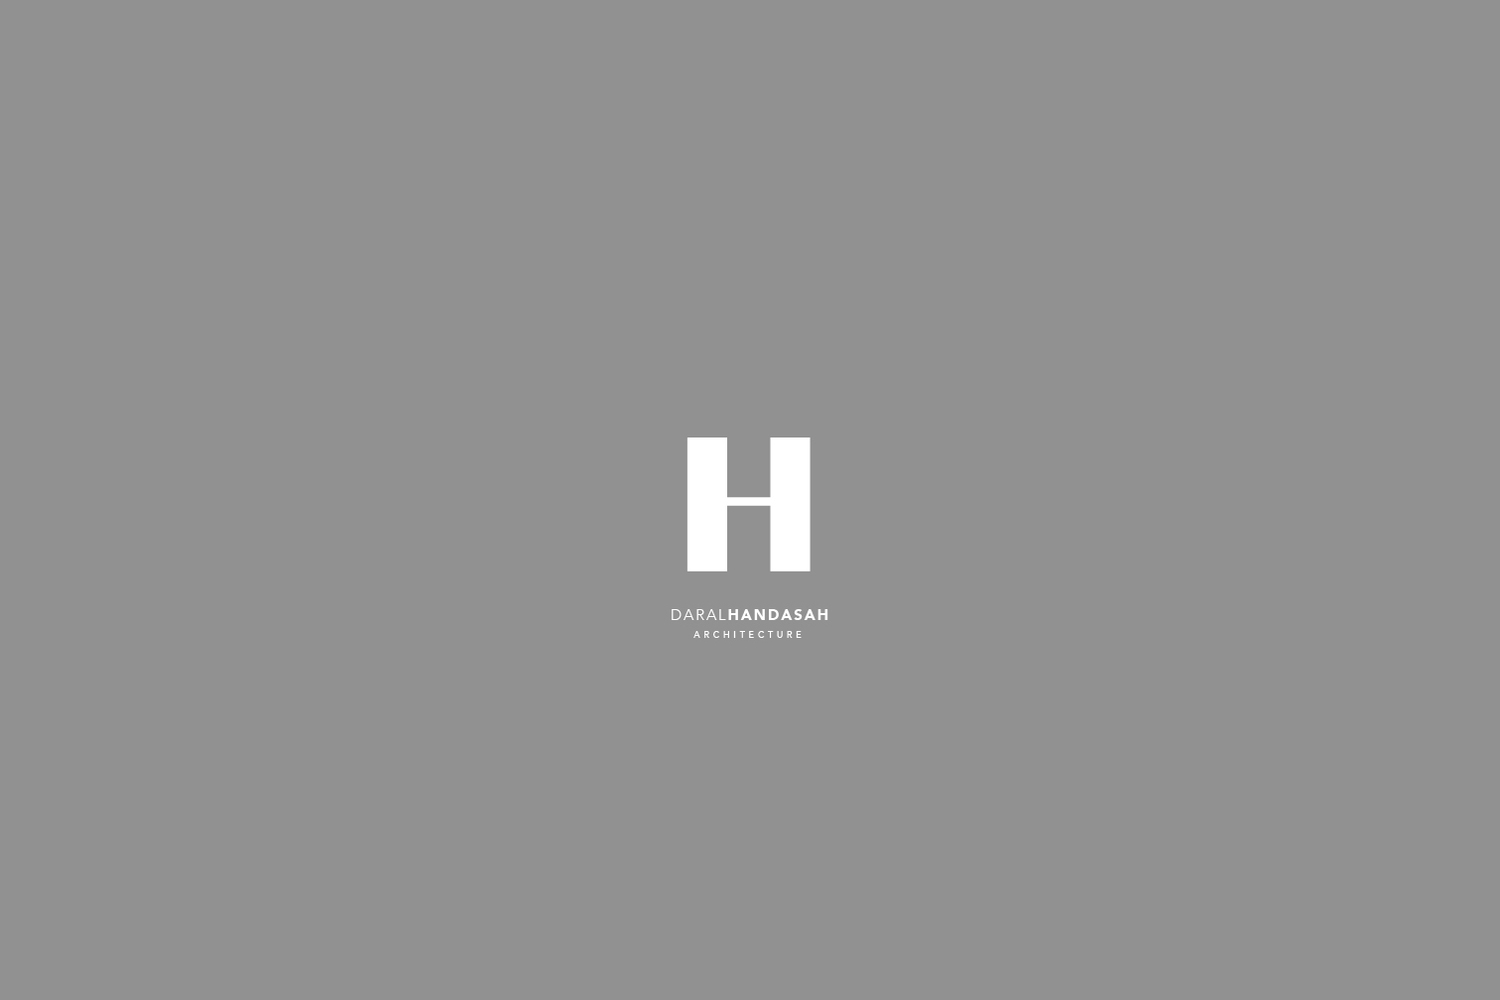 Logo for Daral Handasah Architecture